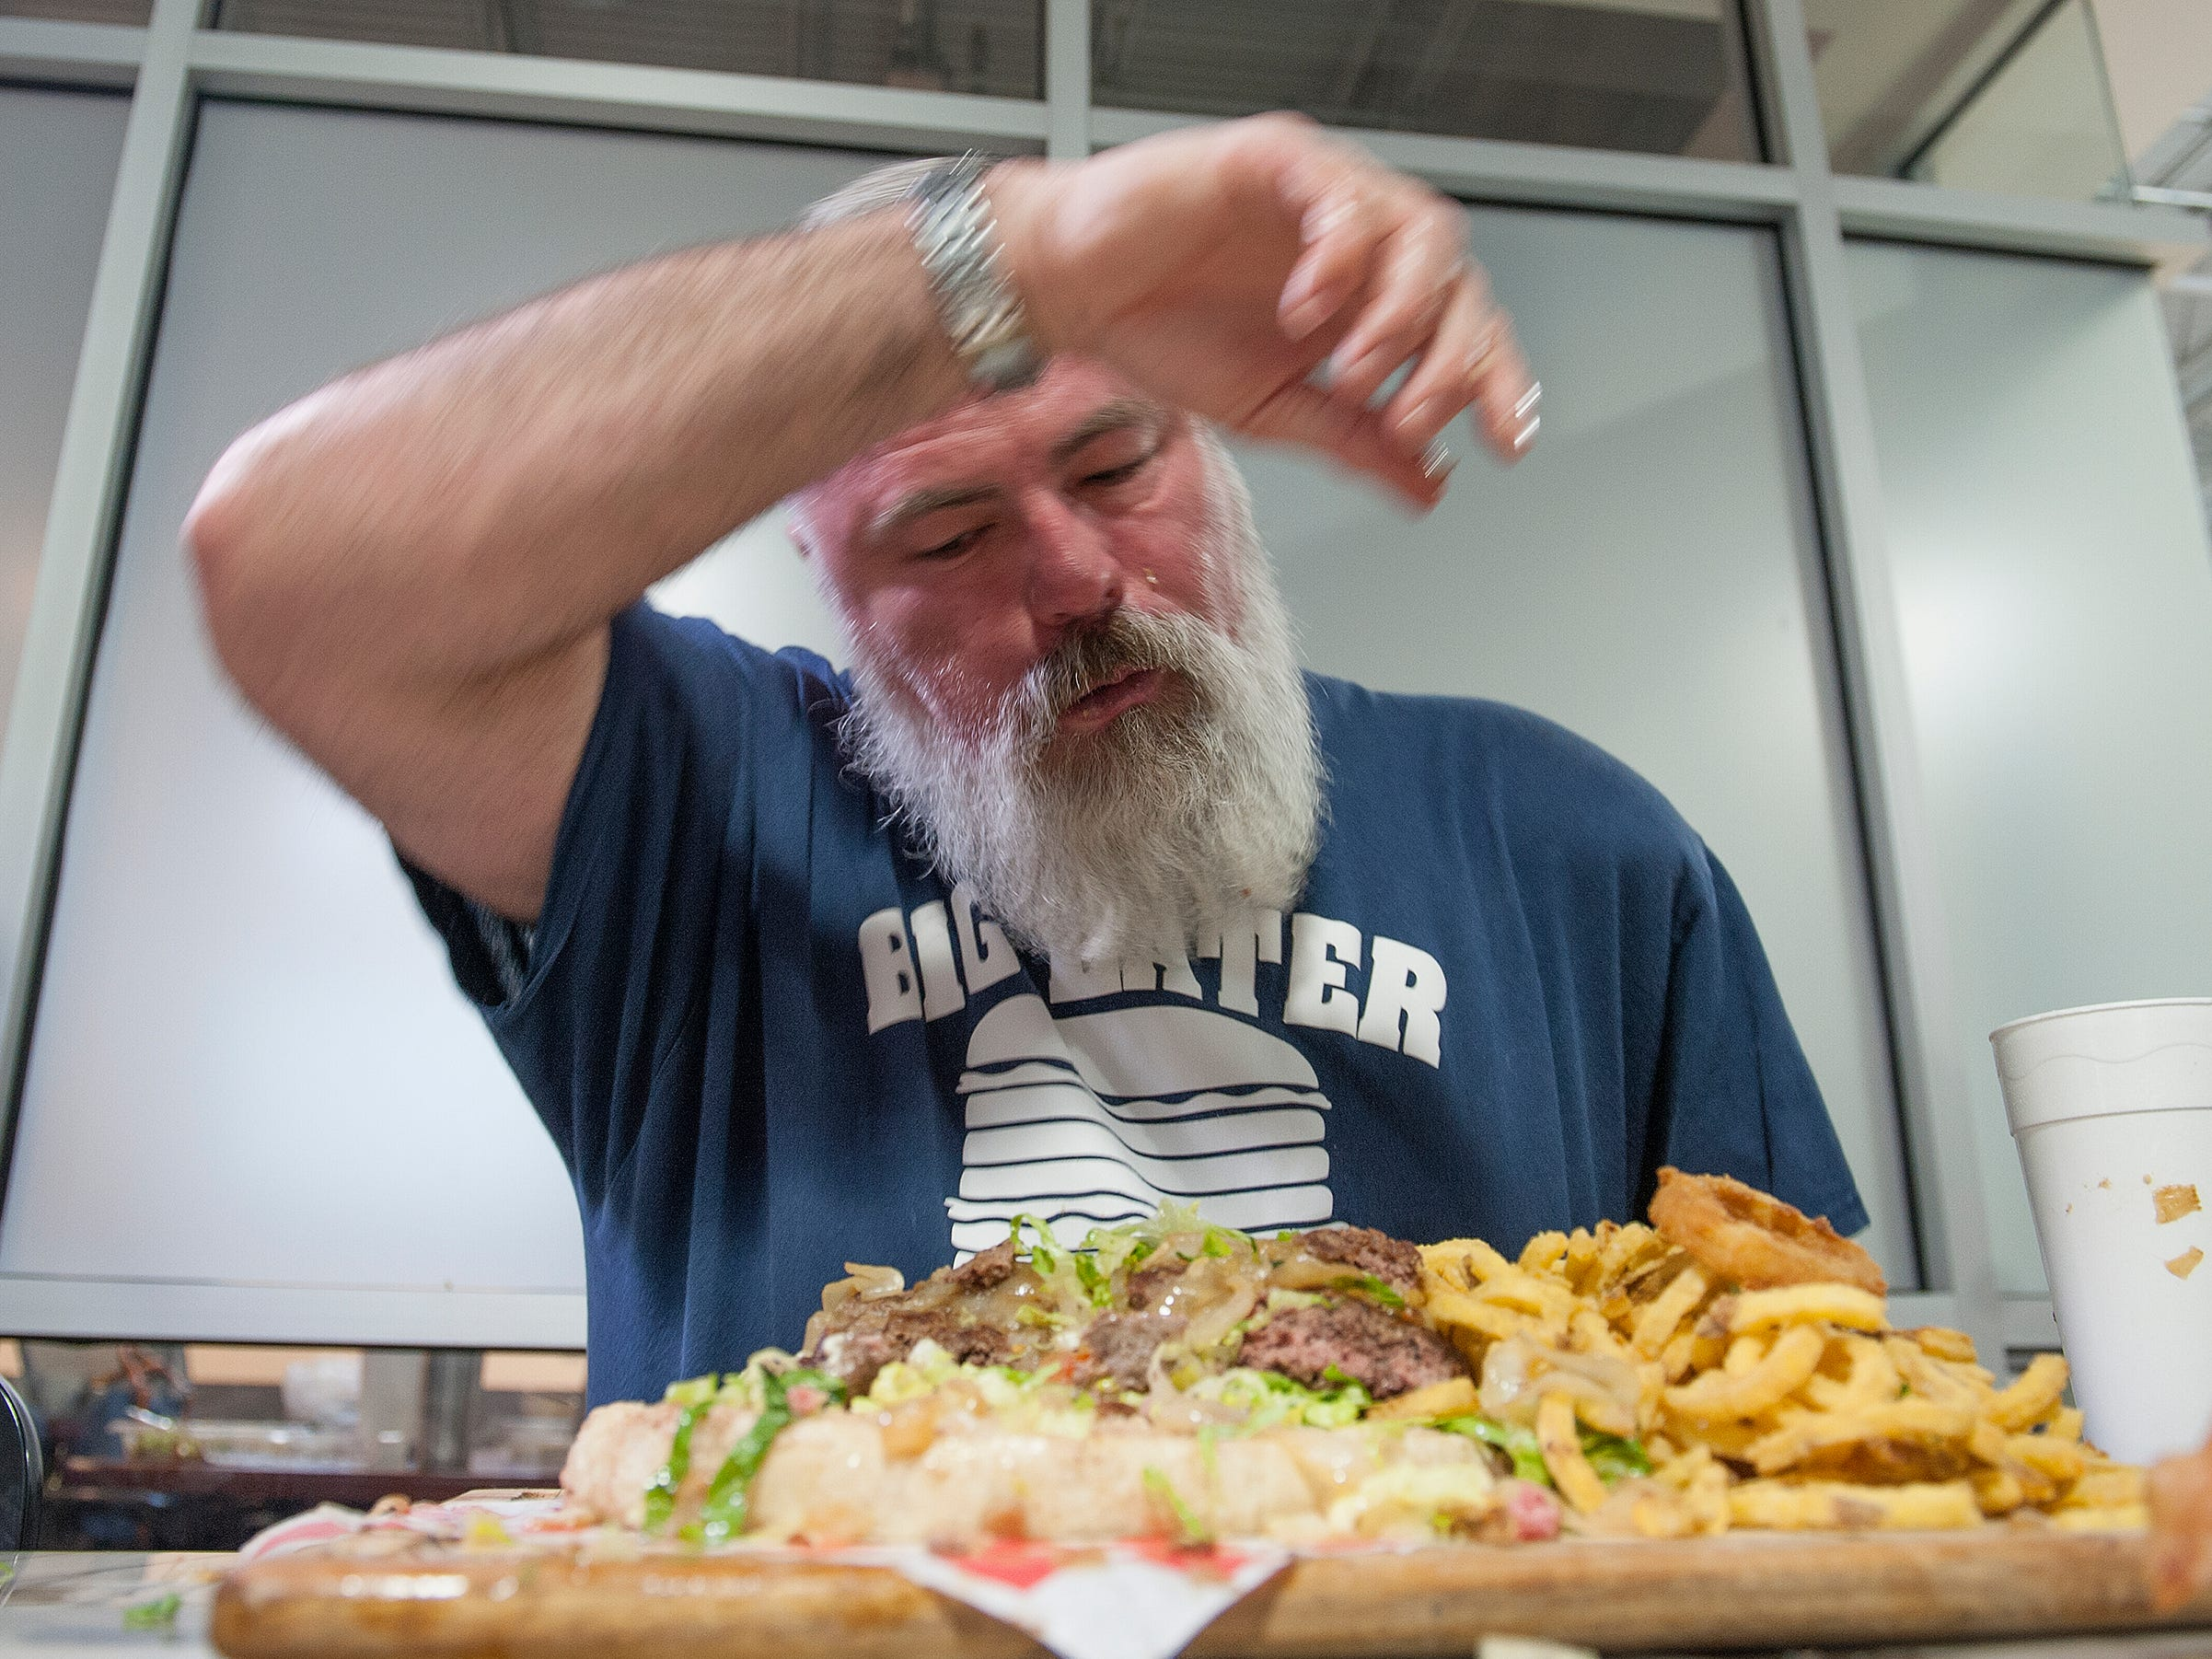 Big Eater Mike feels the strain as he pauses to wipe sweat off his brow during Rooster's Stupid Burger Challenge Friday, 1, 2019, in the Fondren district of Jackson.